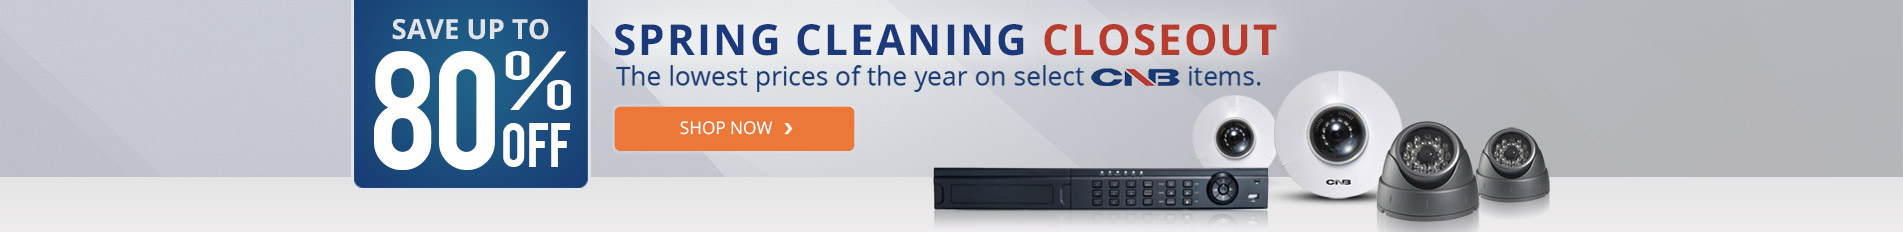 CNB Spring Cleaning Closeout Sale